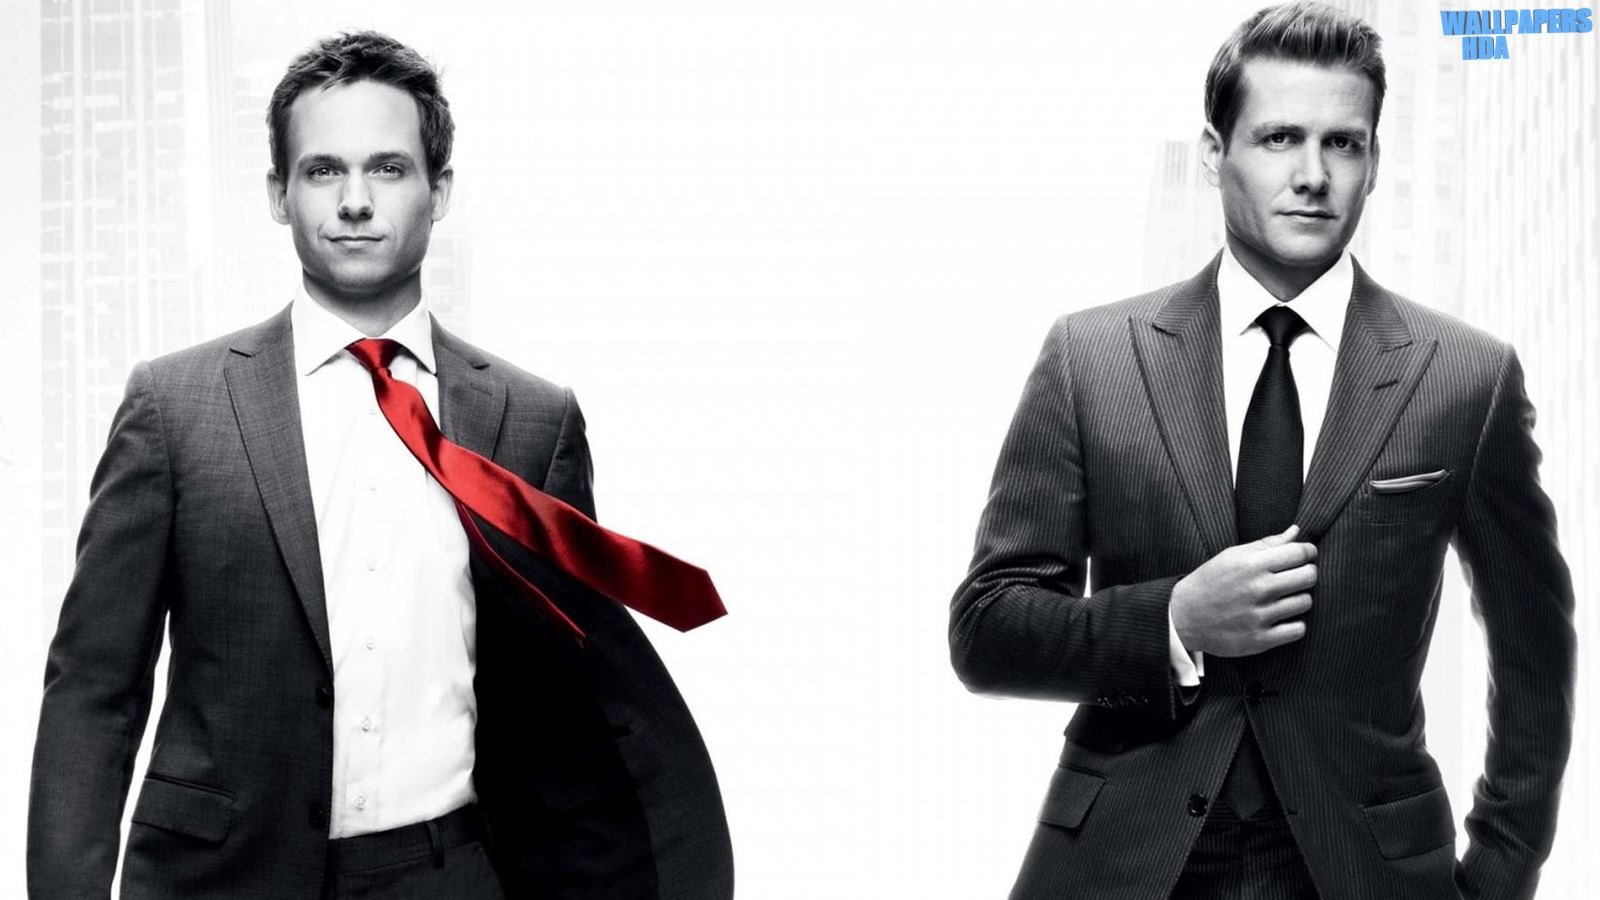 Suits tv show wallpaper 1600x900